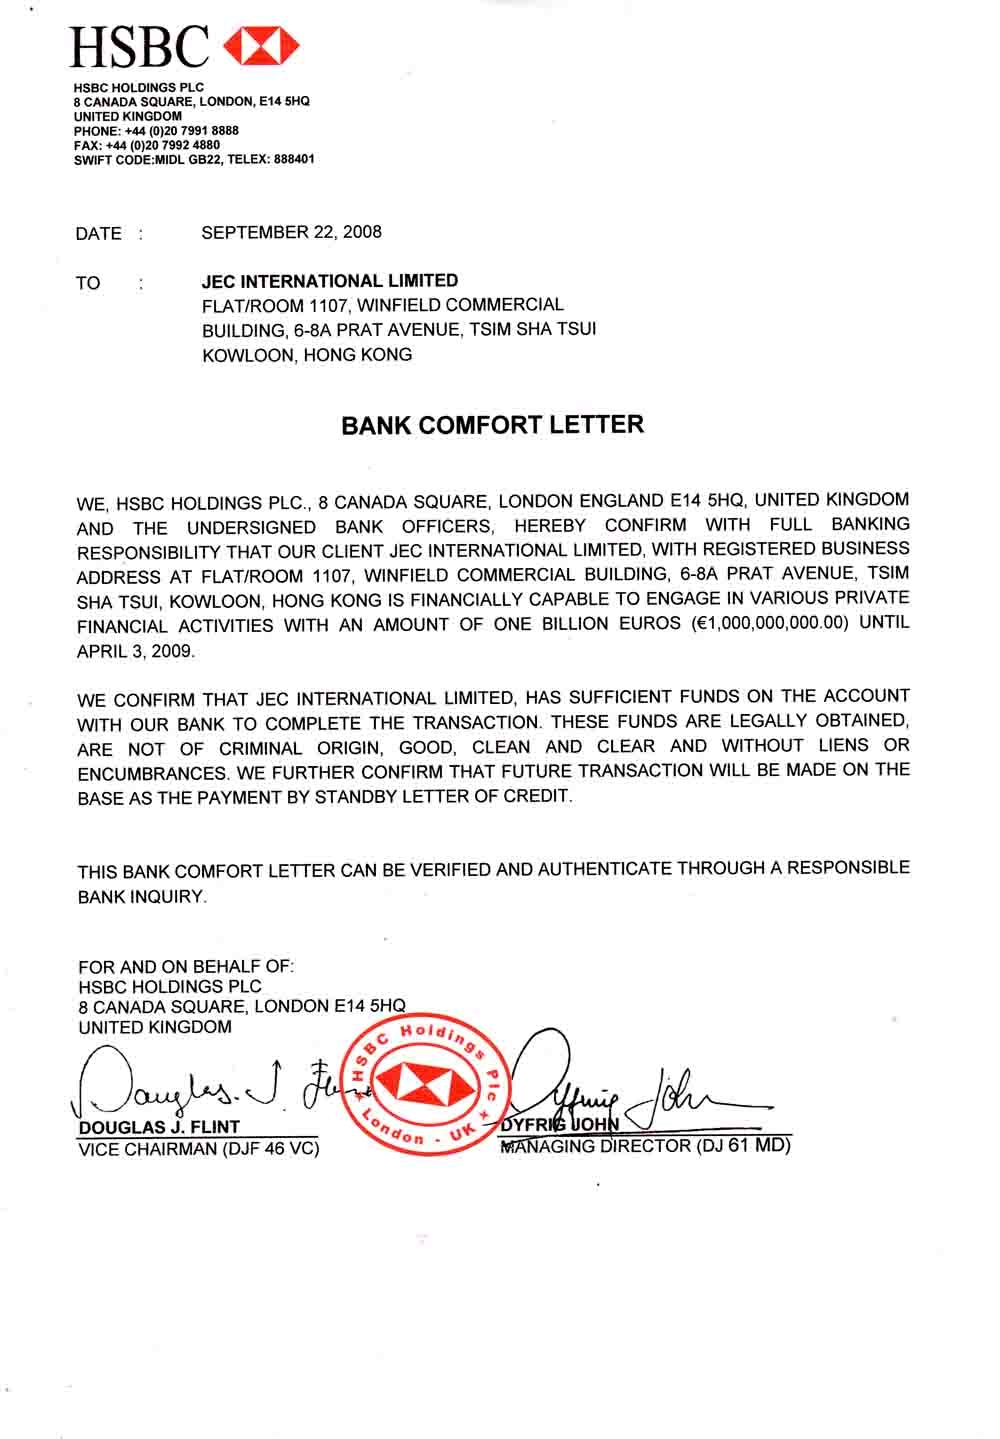 Bcl bank confirmation letter sample bcl bank confirmation letter bank confirmation letter bcl bank comfort letter bcl commonly referred to as a bcl is typically used in a commodities transaction to a3 output sample spiritdancerdesigns Image collections